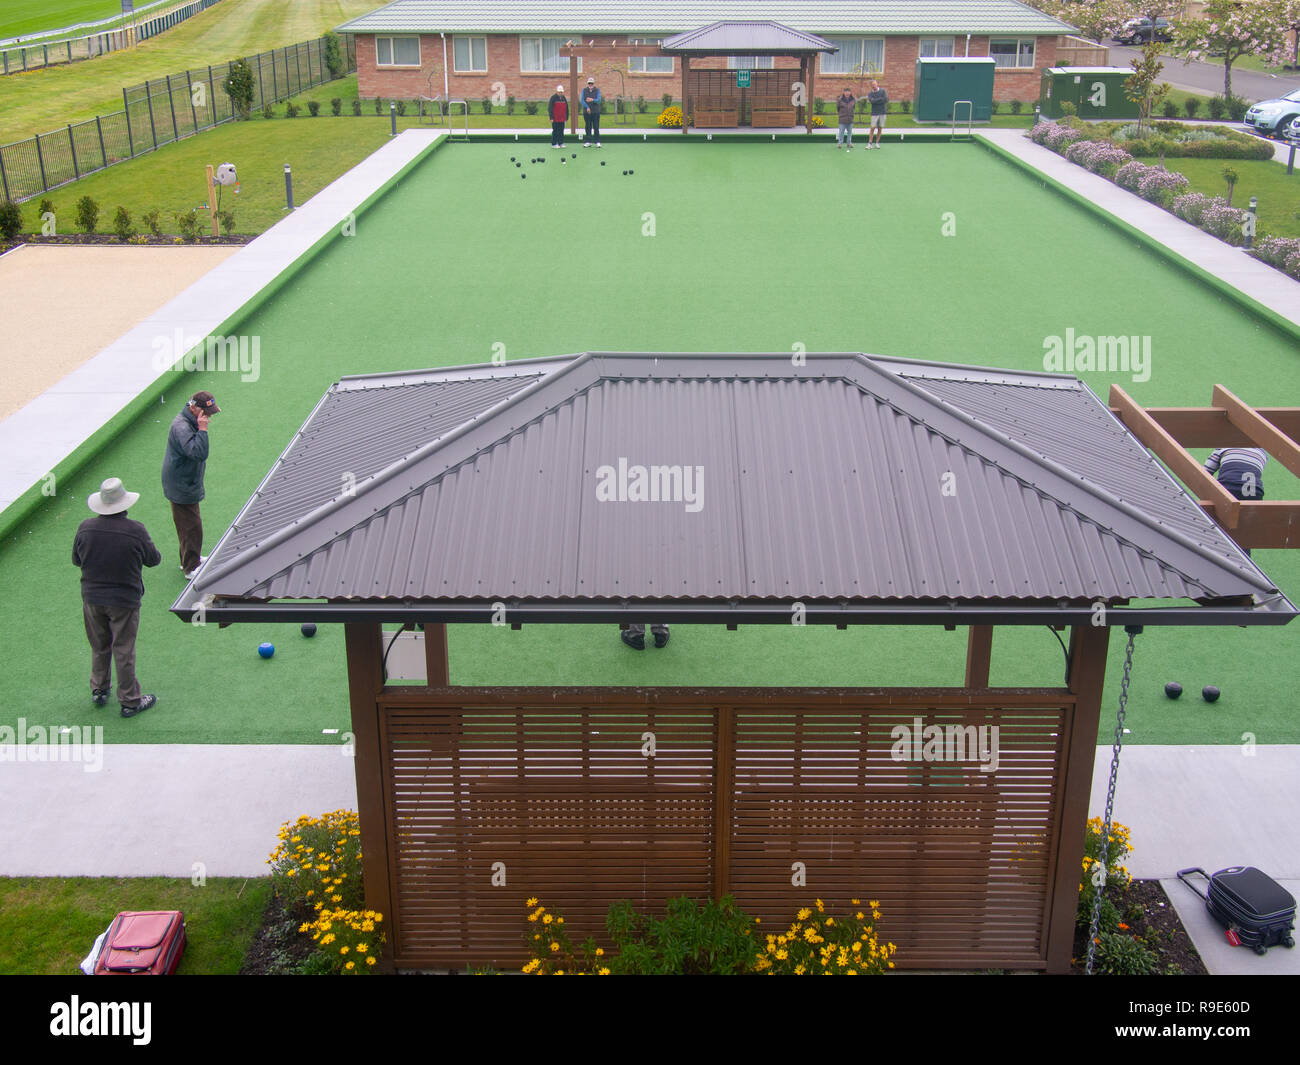 Lawn Bowls In A Retirement Village - Stock Image